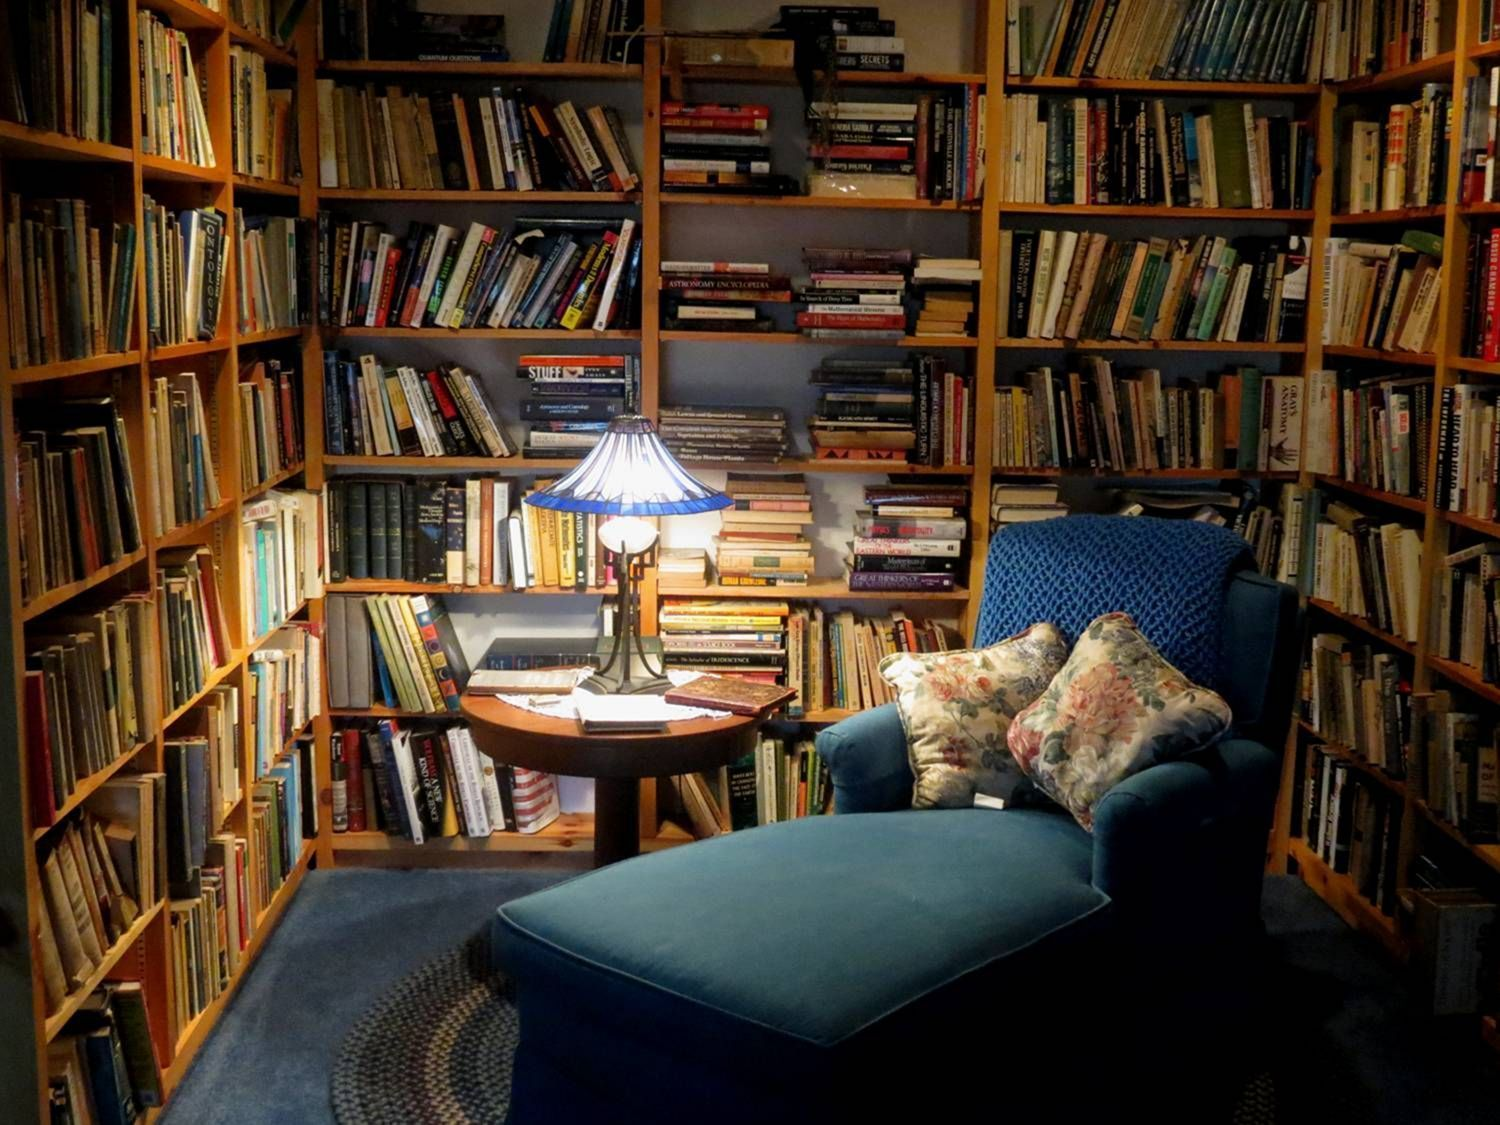 25 Cozy Small Home Library Design Ideas That Will Blow Your Mind | Home  library rooms, Small home libraries, Home library design